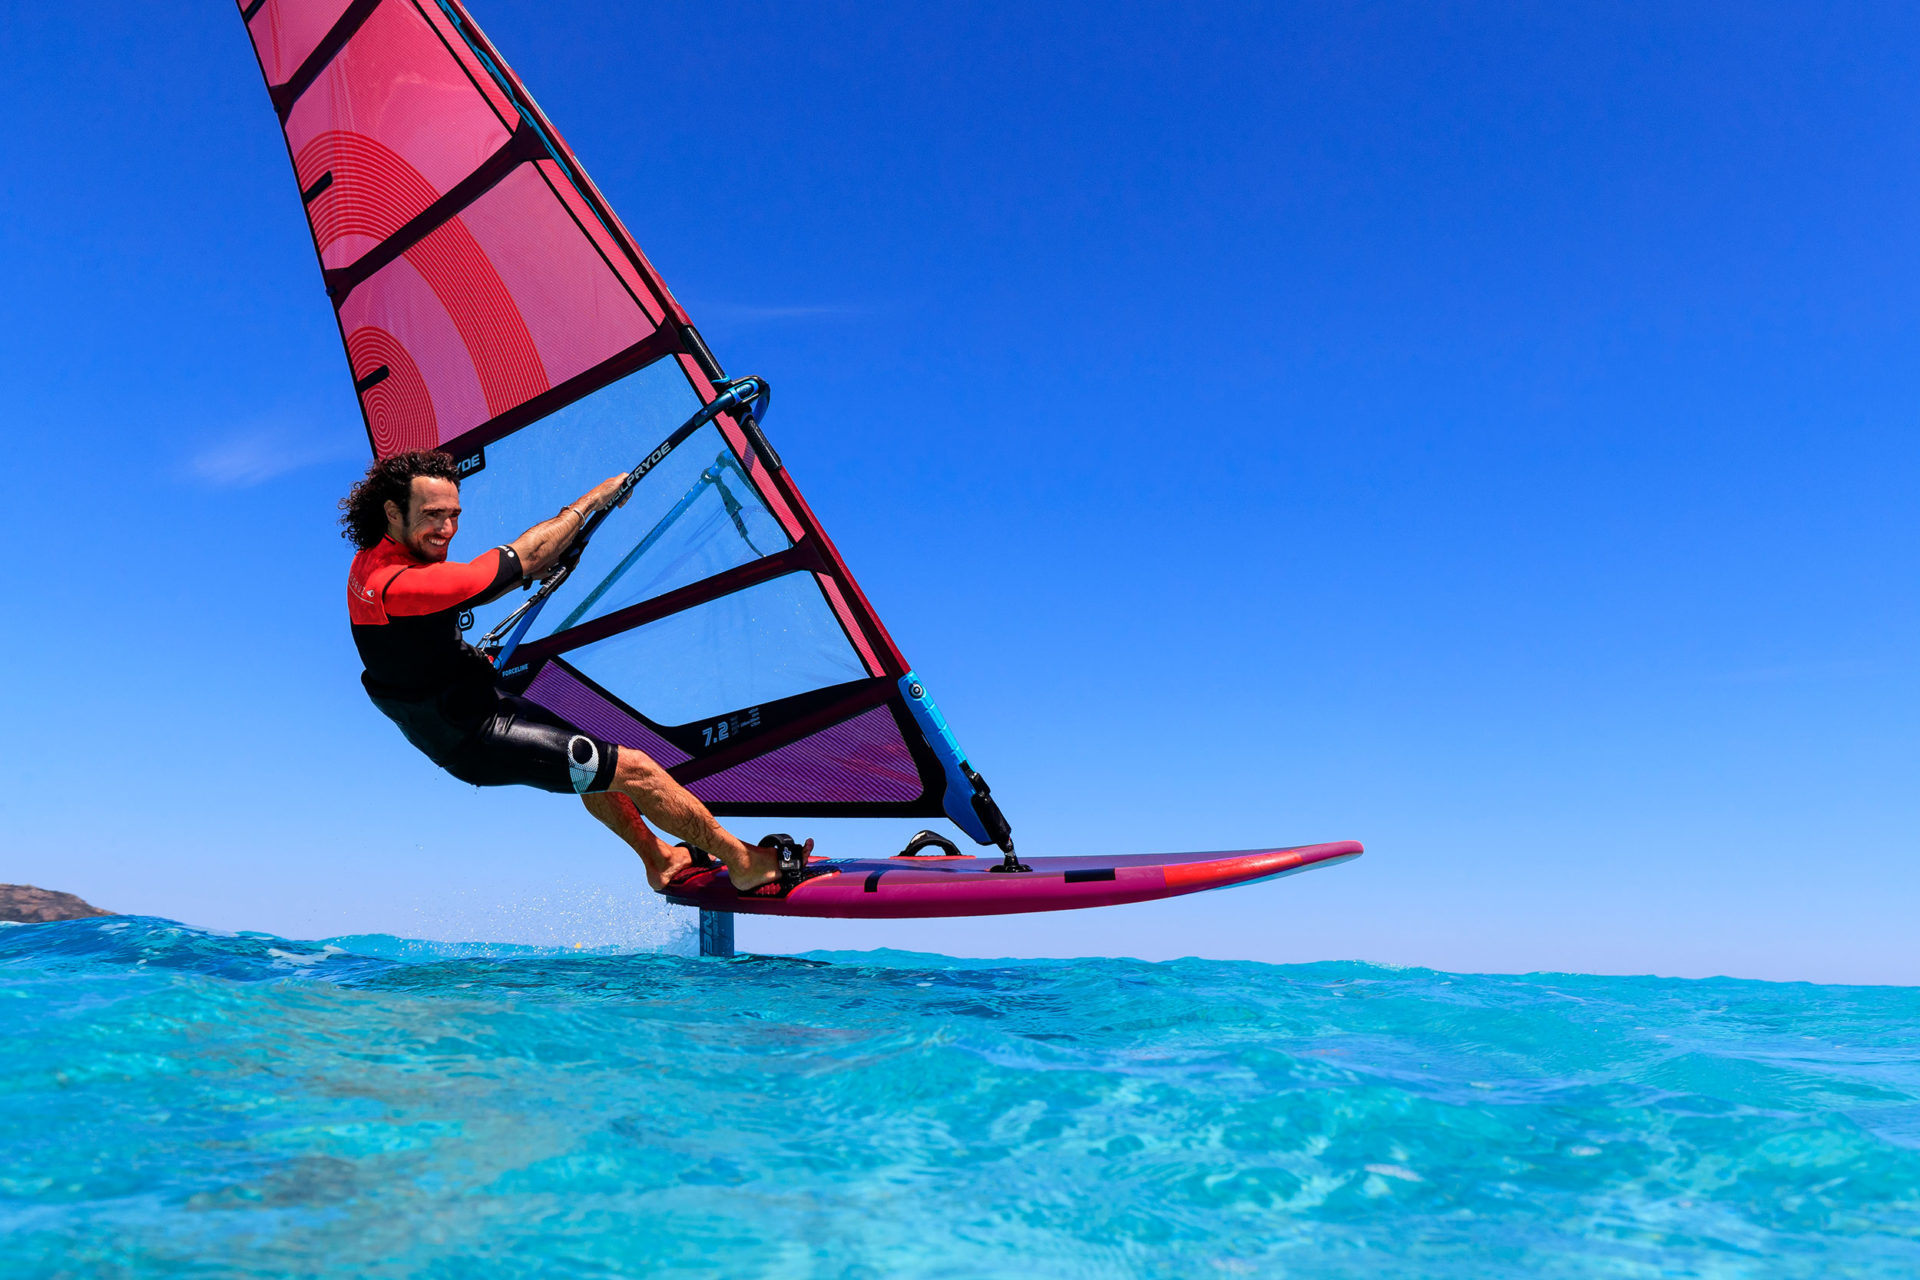 super ride plovak na windsurfing 2020 jp australia